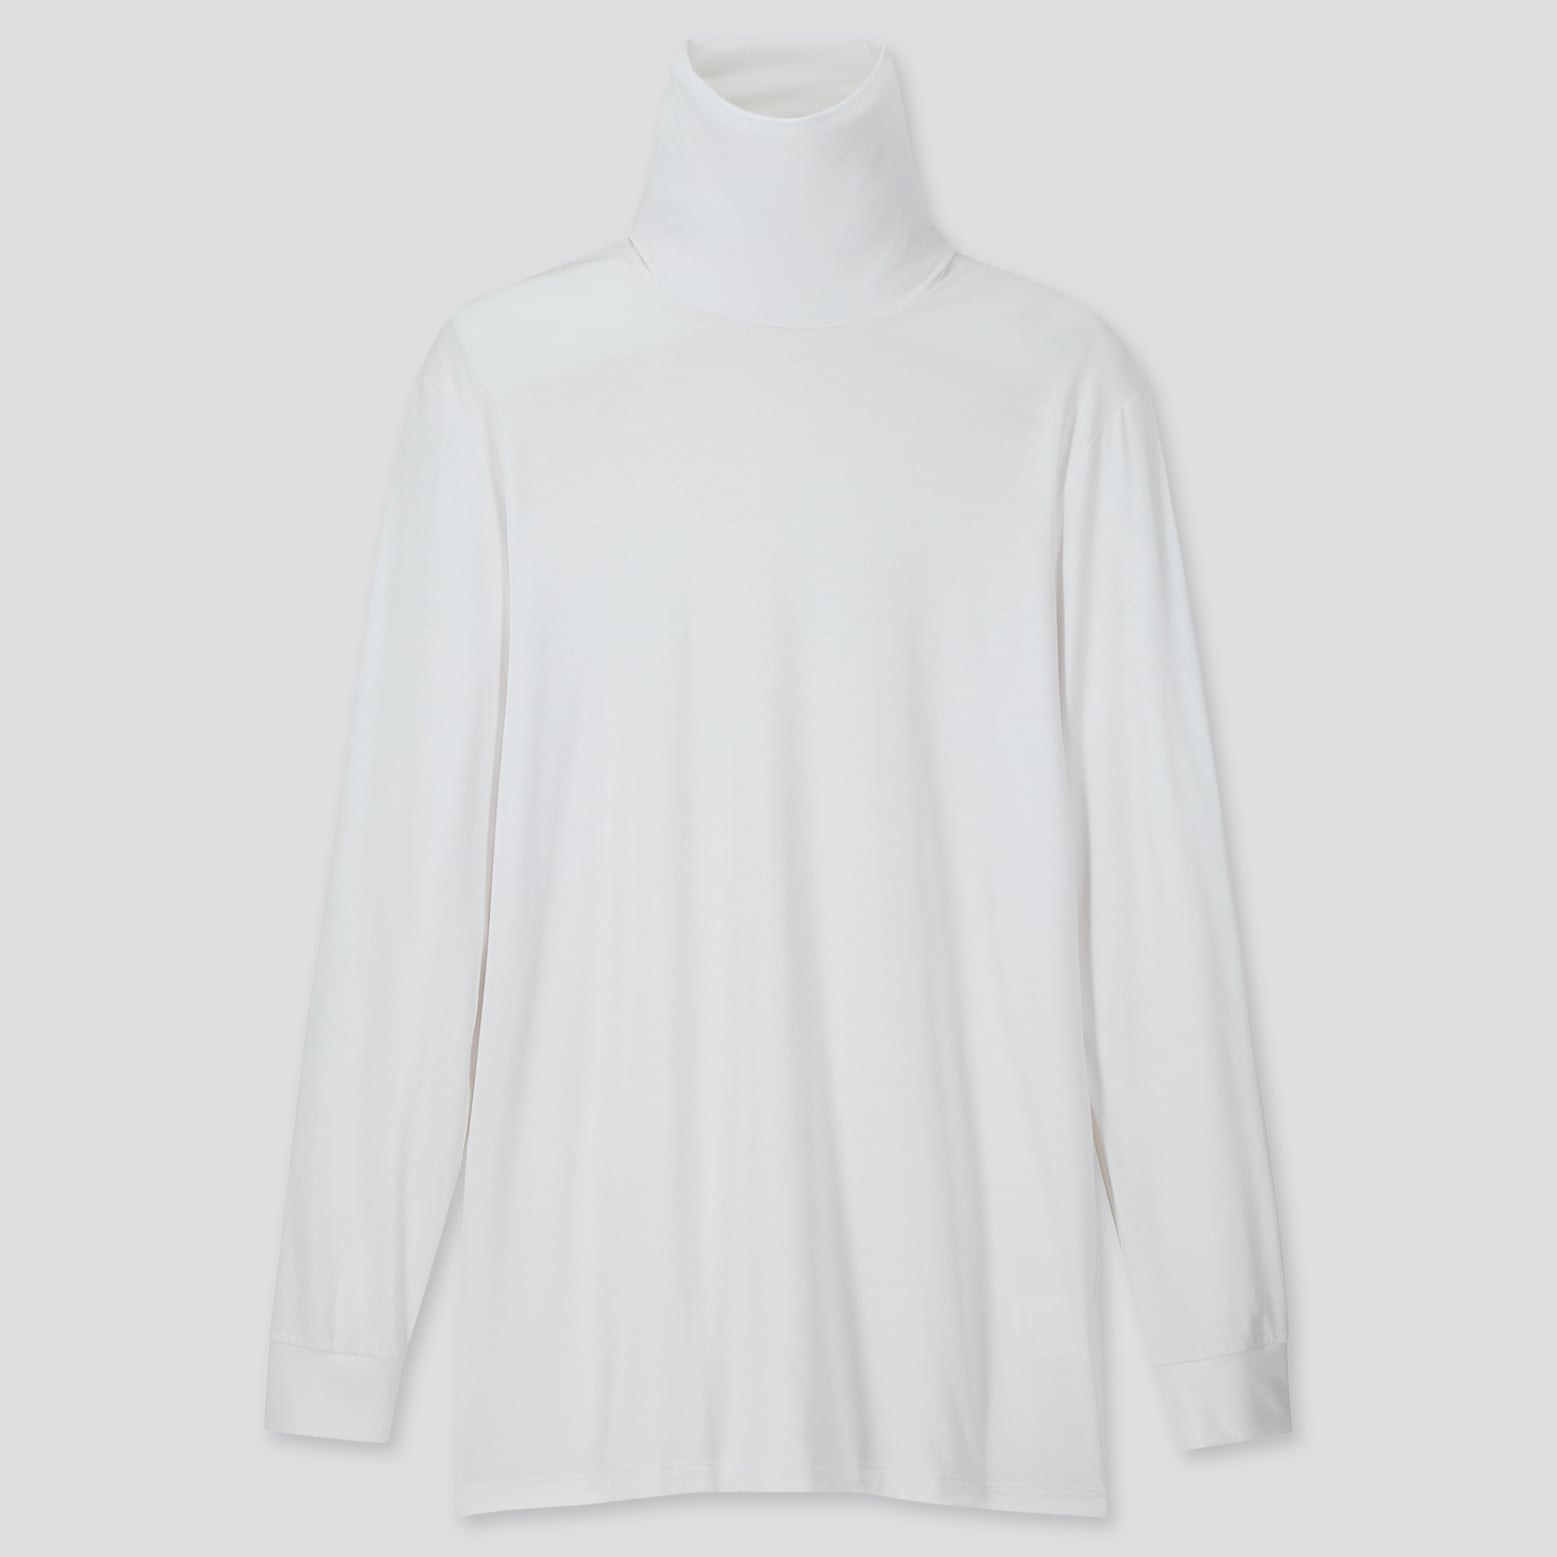 Heattech Turtleneck Long Sleeve T Shirt by Uniqlo